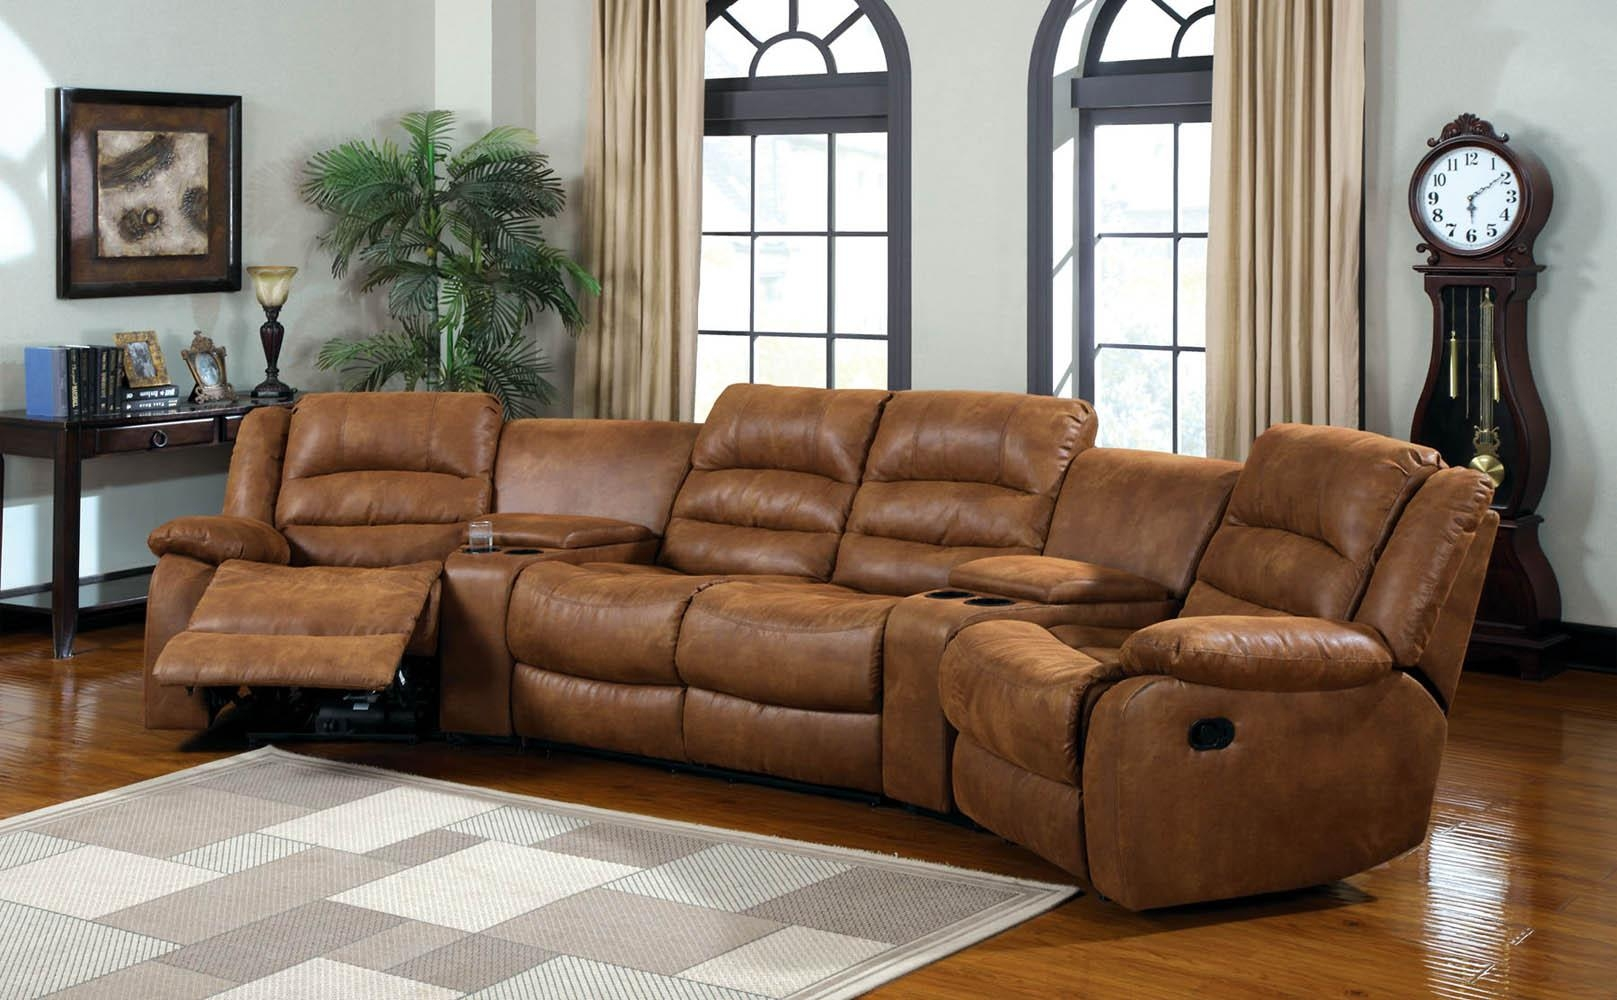 Caramel Leather Sofa With Concept Photo 5041 | Kengire With Regard To Caramel Leather Sofas (Image 6 of 20)